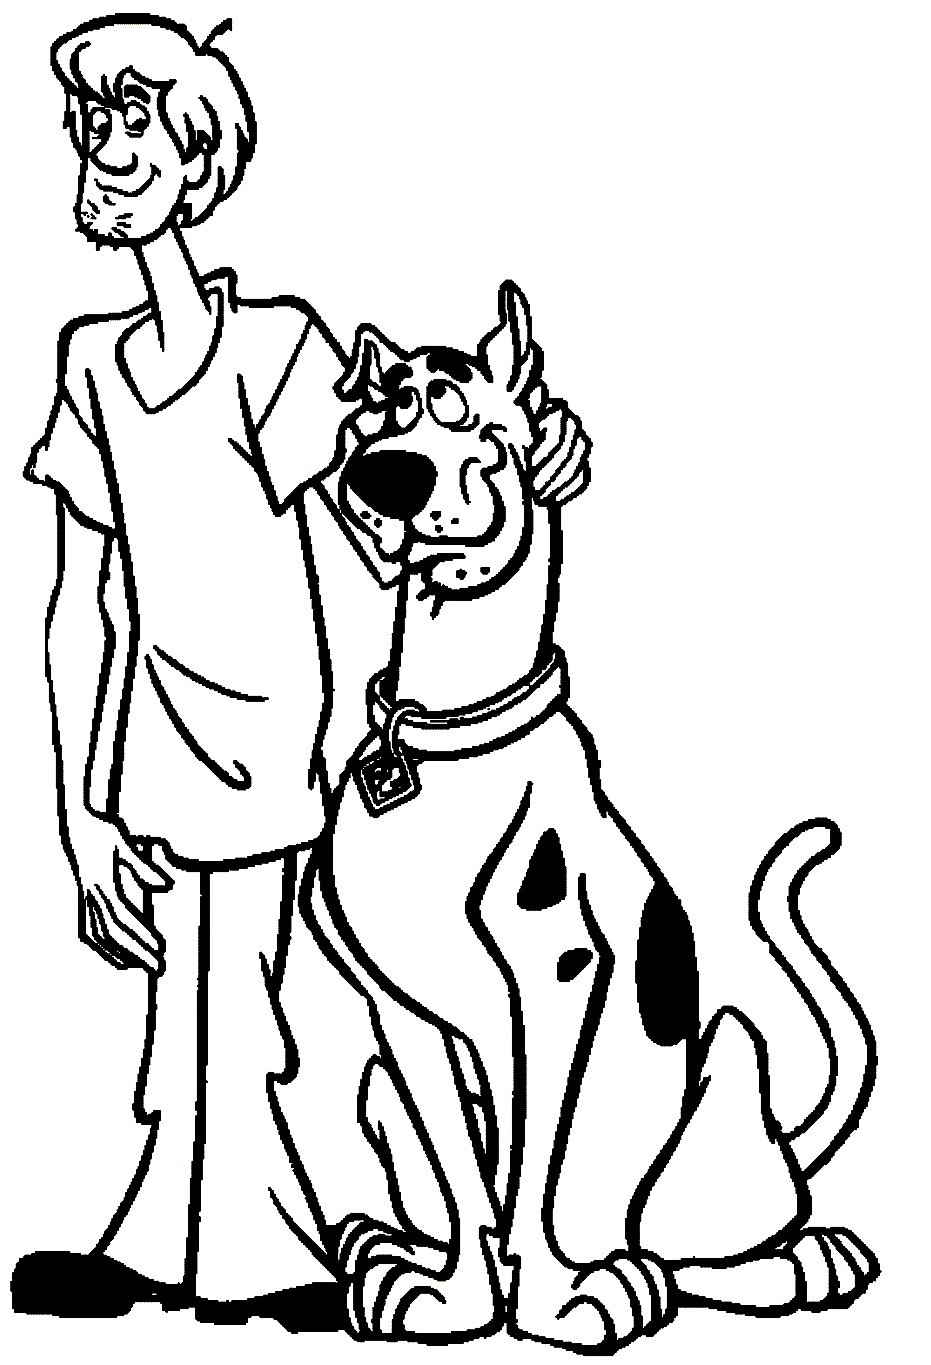 Coloring Sheets For Boys Scooby Doo  Scooby Doo Printable Coloring Pages